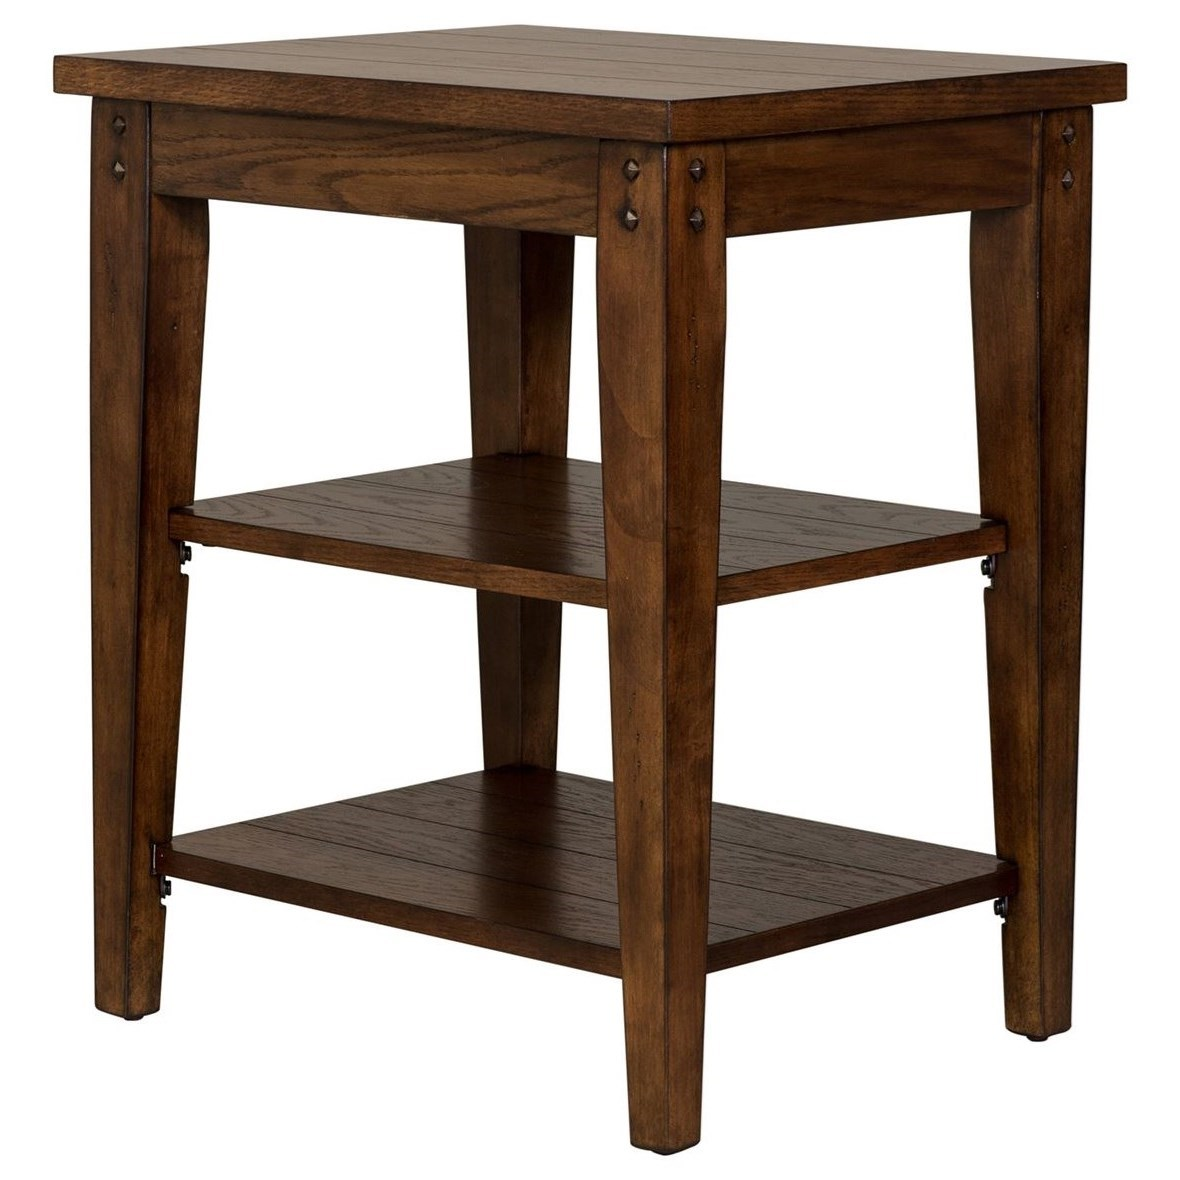 Laney CT Tiered Table by Libby at Walker's Furniture